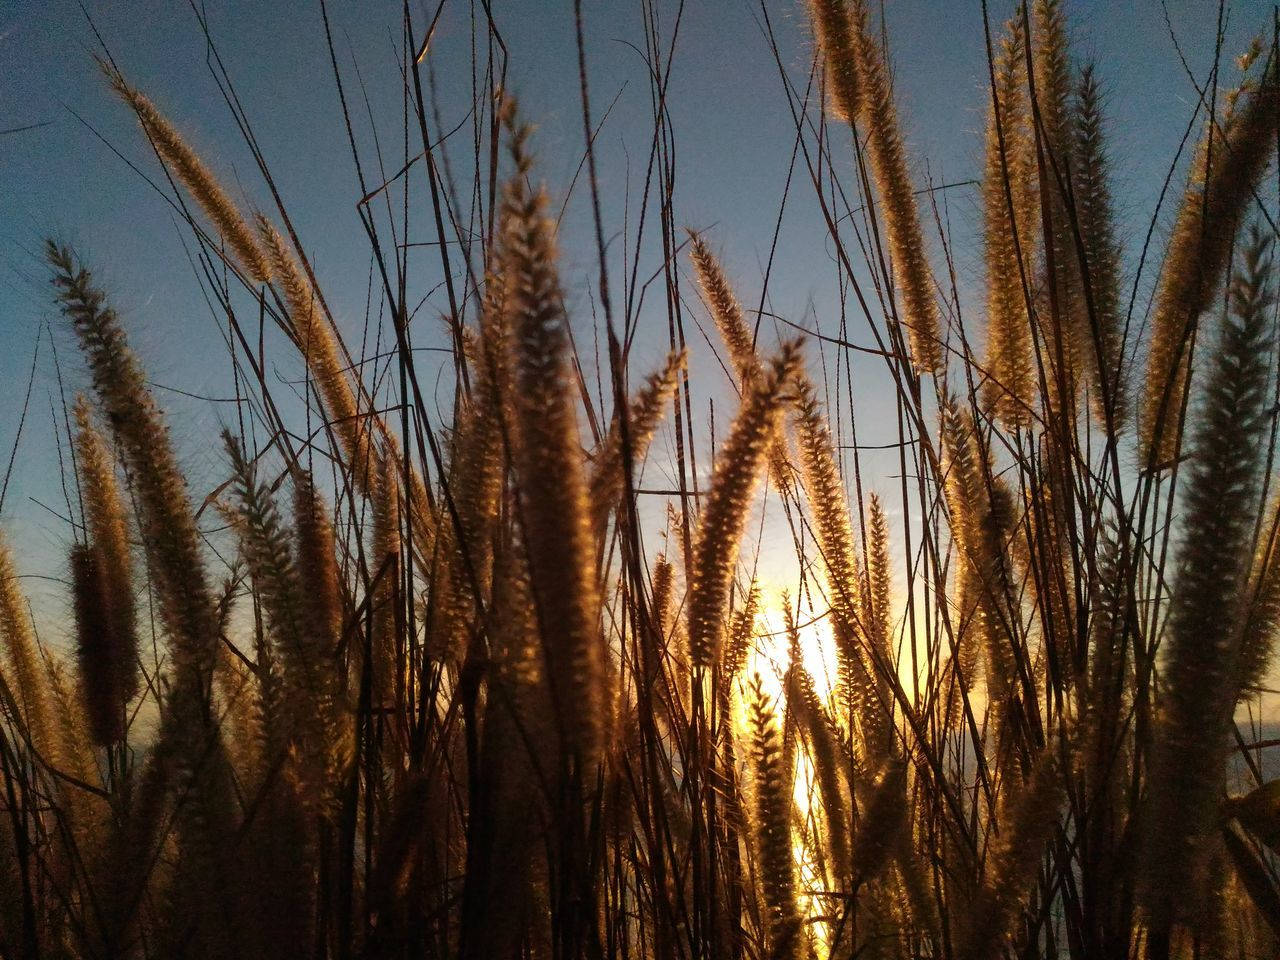 HIDE AND SEEK Scenics Nature Sunset Beauty In Nature Wanderlust Sightseeing Beautyofnature Nofilter No Edit/no Filter